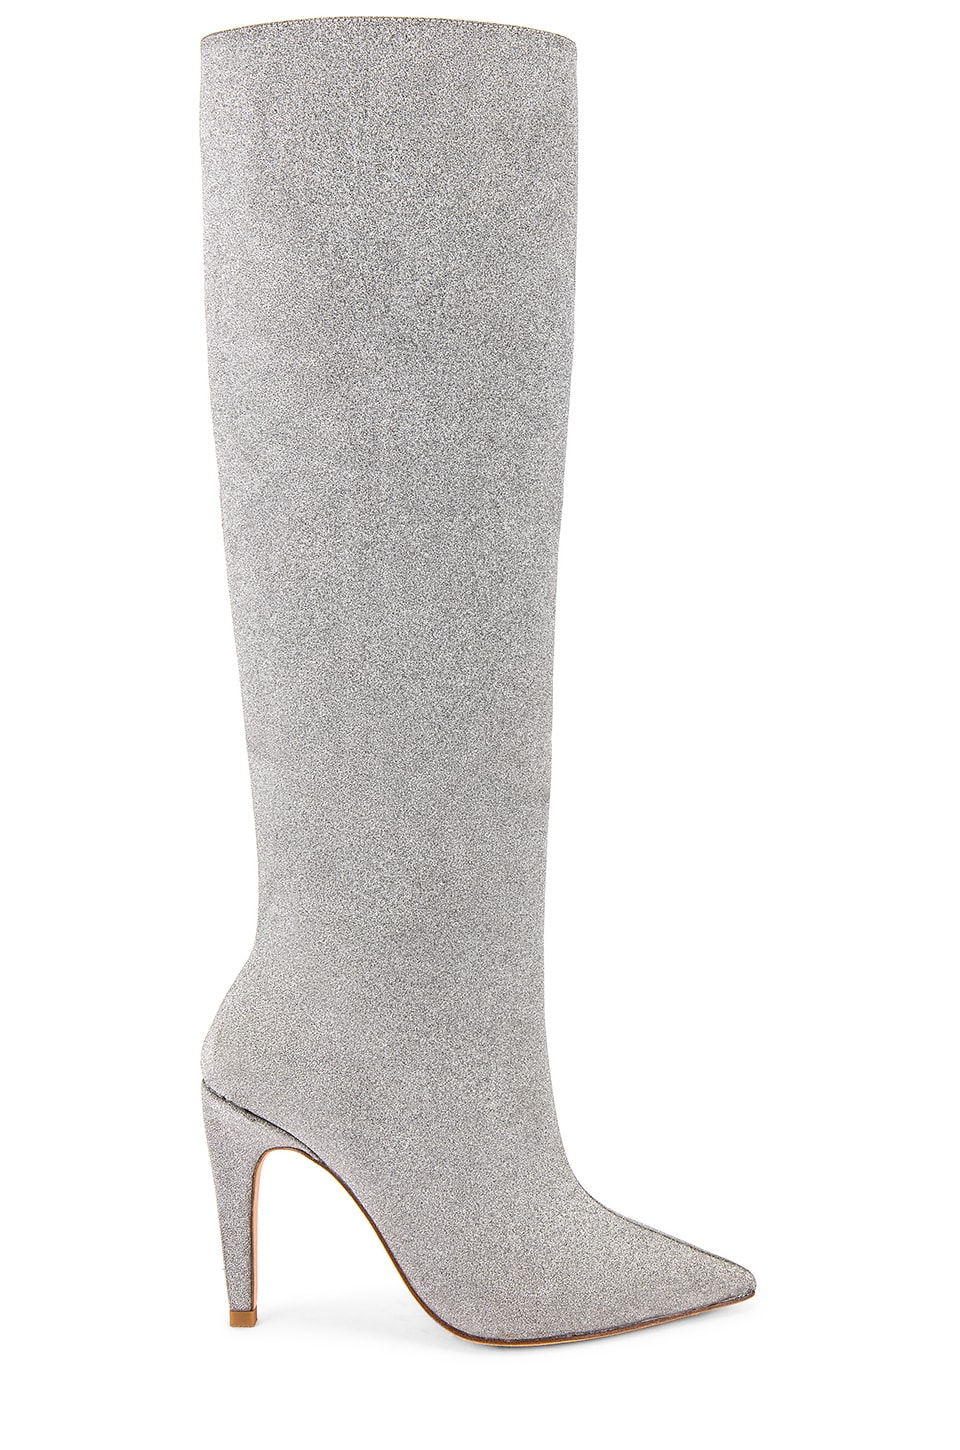 RAYE Era Boot in Silver